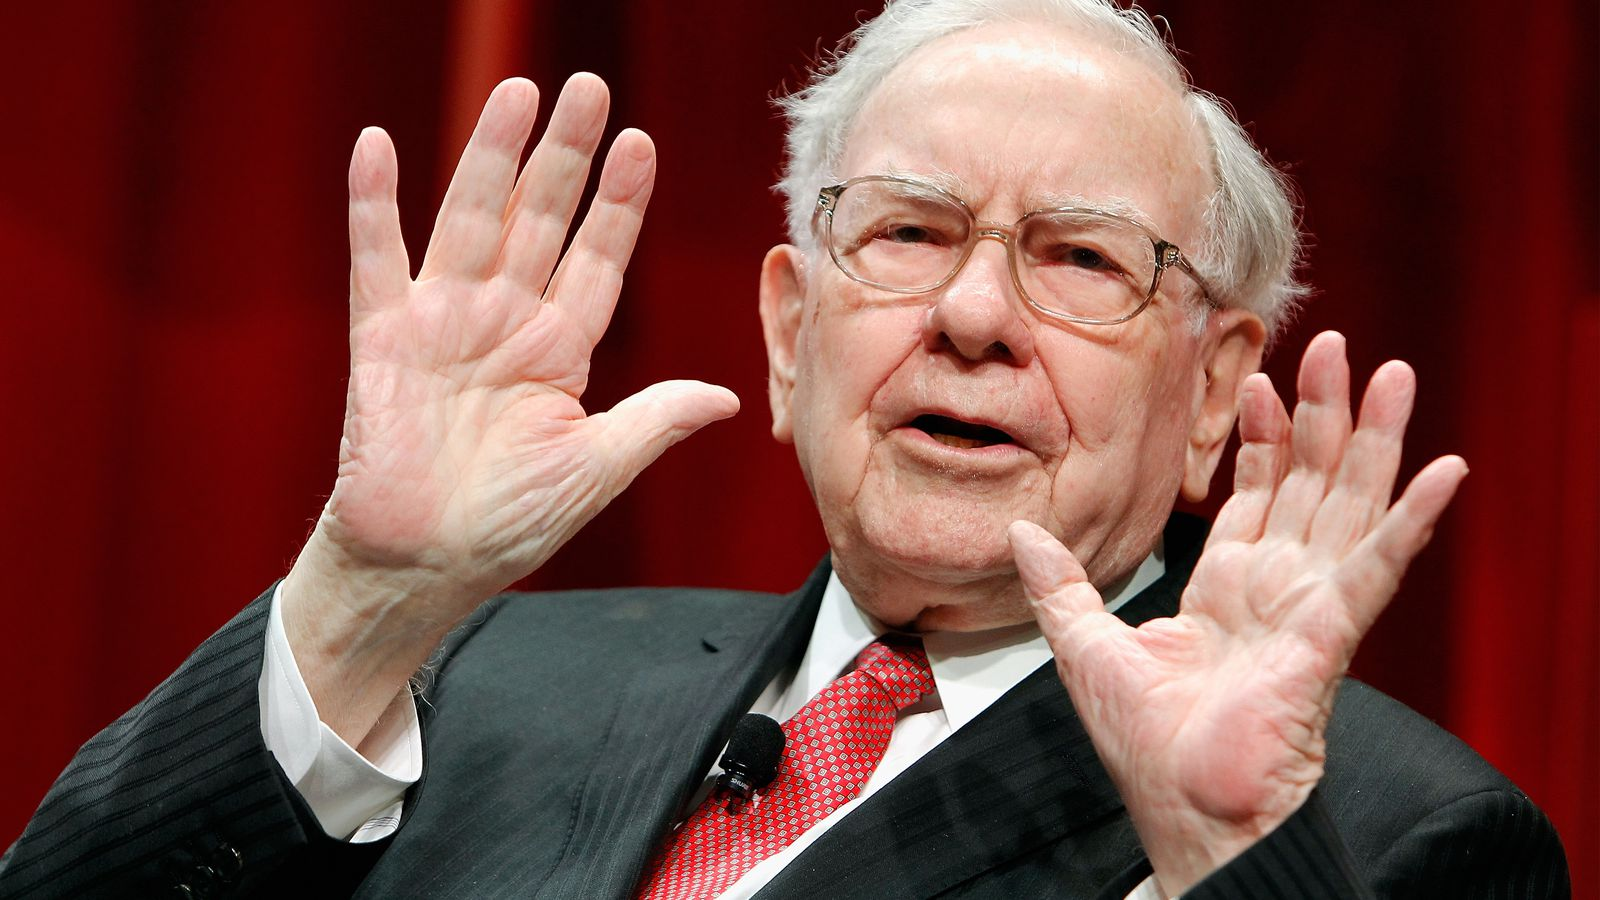 Top ex-Yahoos are advising Buffett-financed group in bid for company - Recode